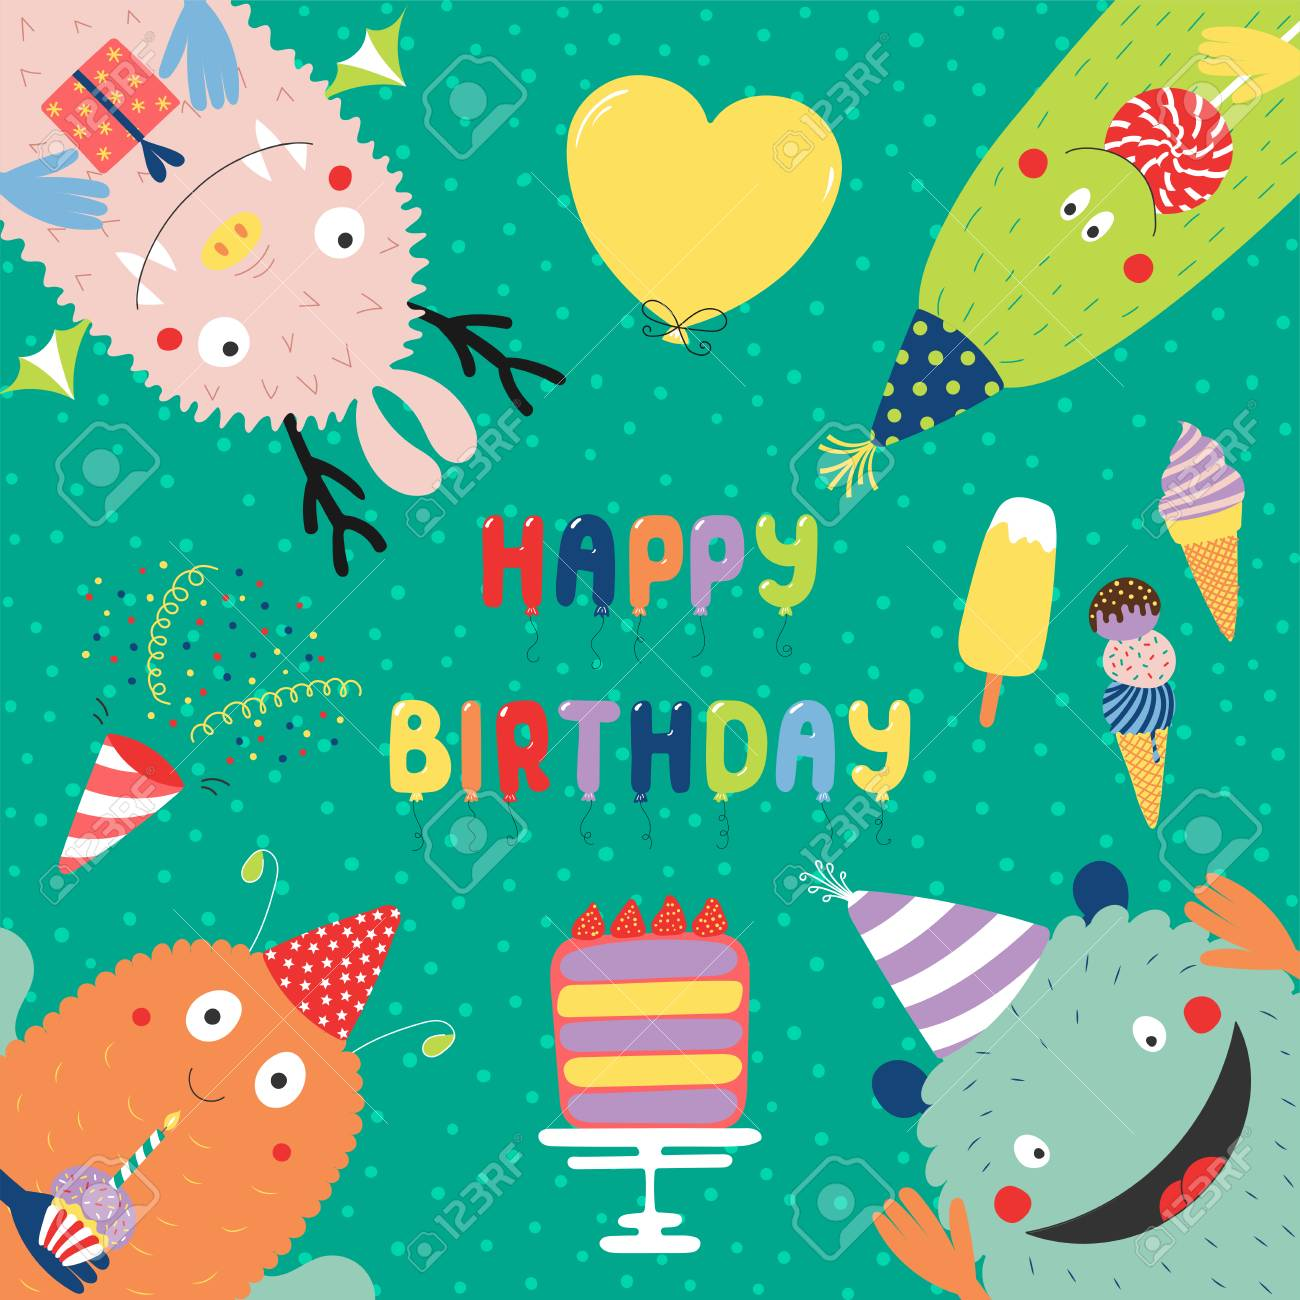 Hand Drawn Birthday Card With Cute Funny Monsters In Party Hats Looking From All Sides